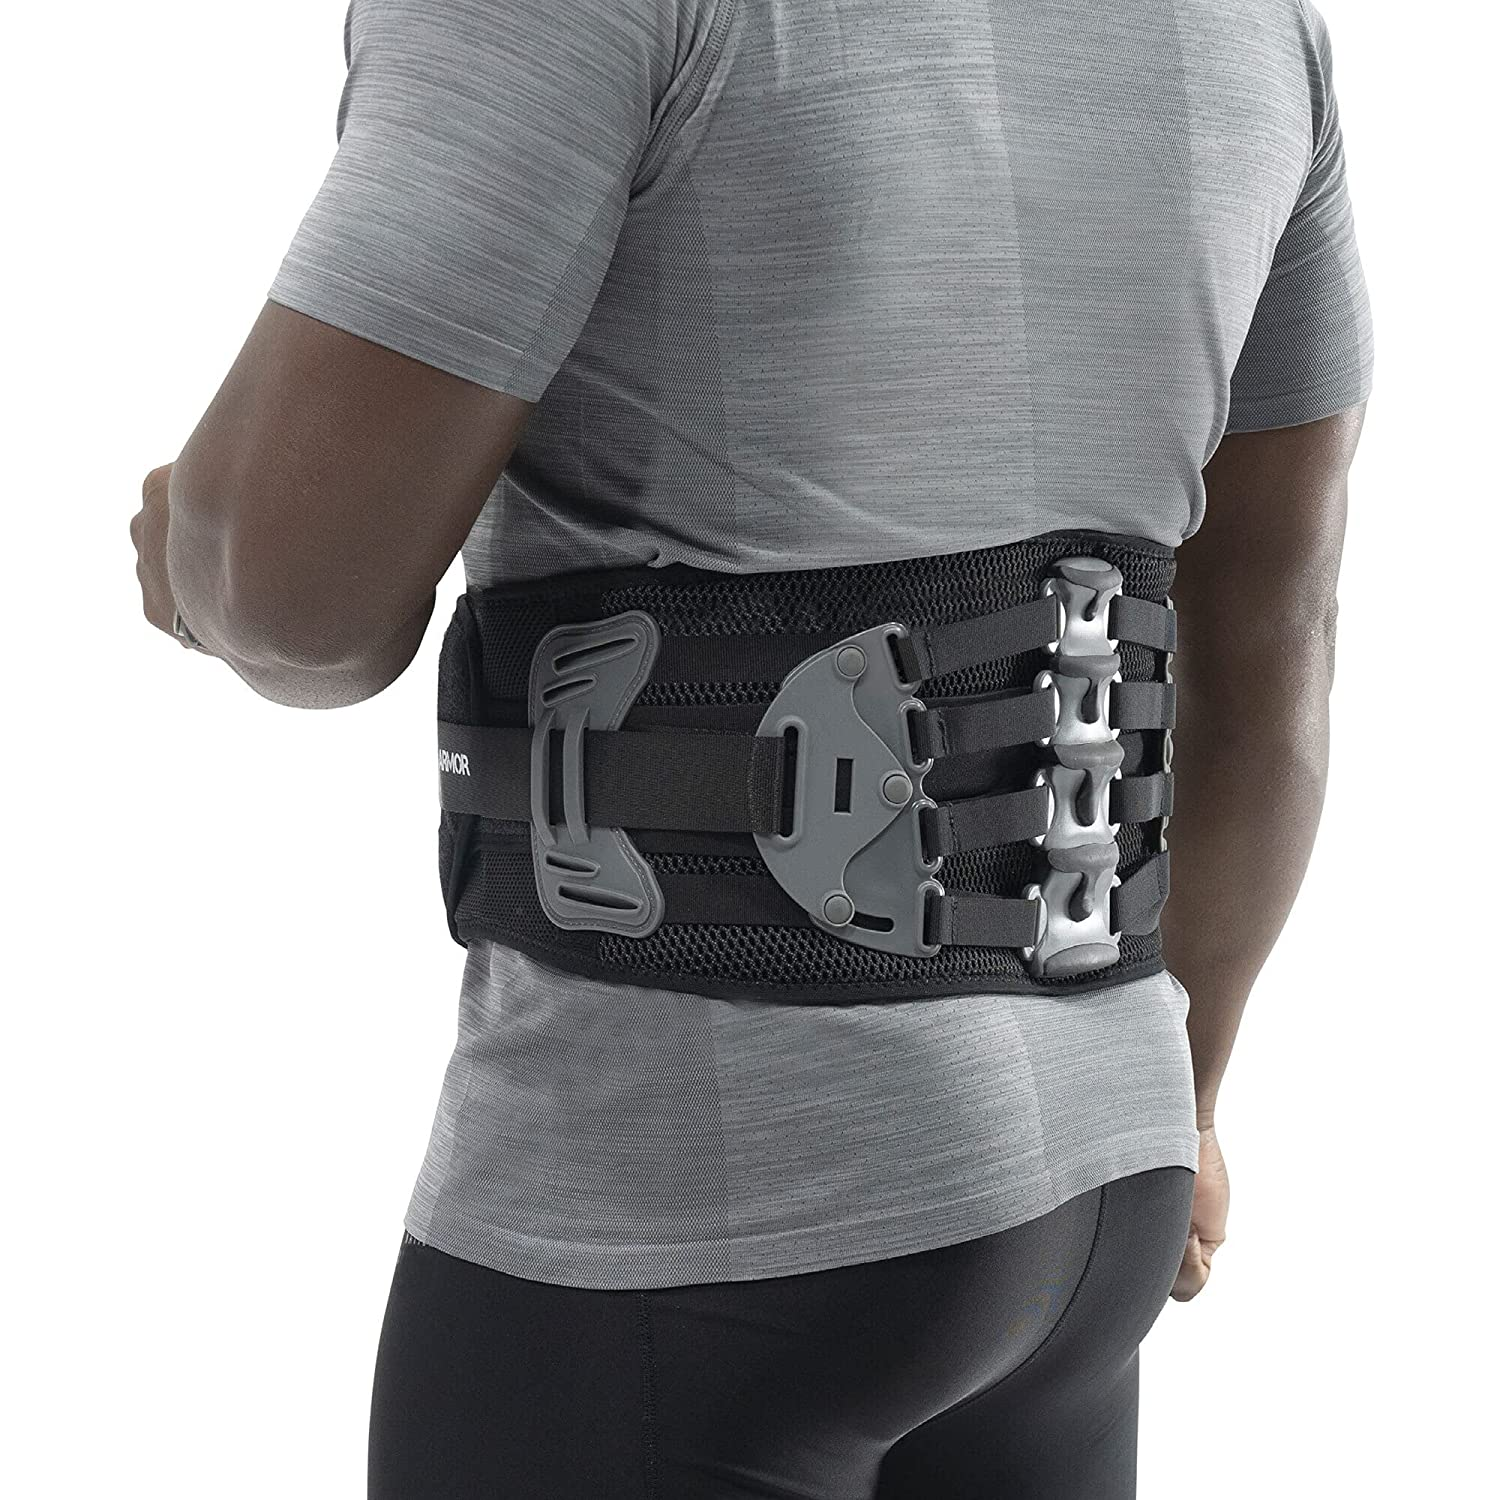 Back Support System by Spinal Armor Sales of SALE items from new works fr Pain - Lower famous Relieve